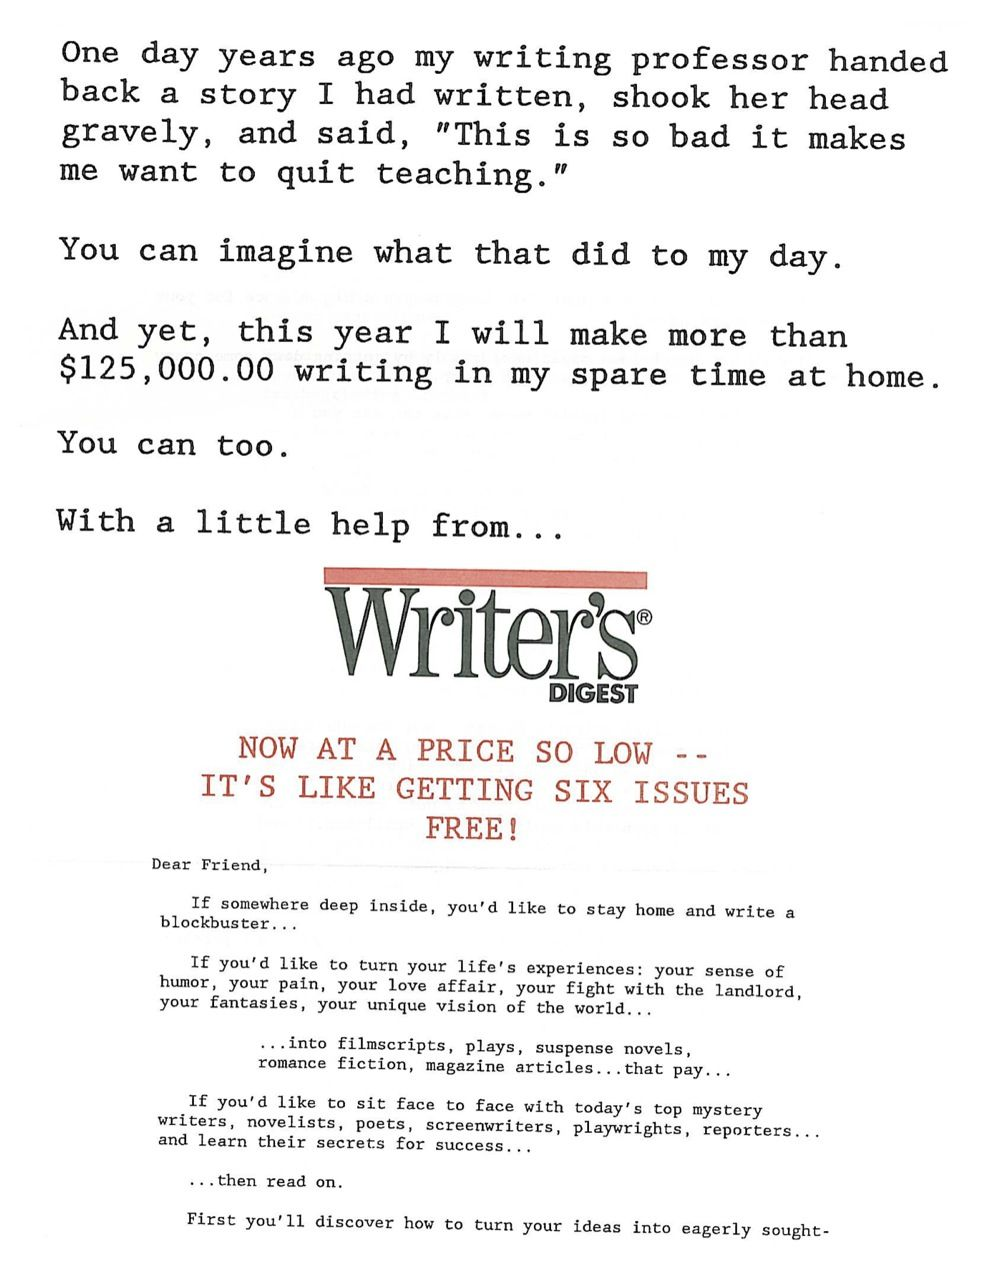 My direct mail sales letter for Writer's Digest magazine